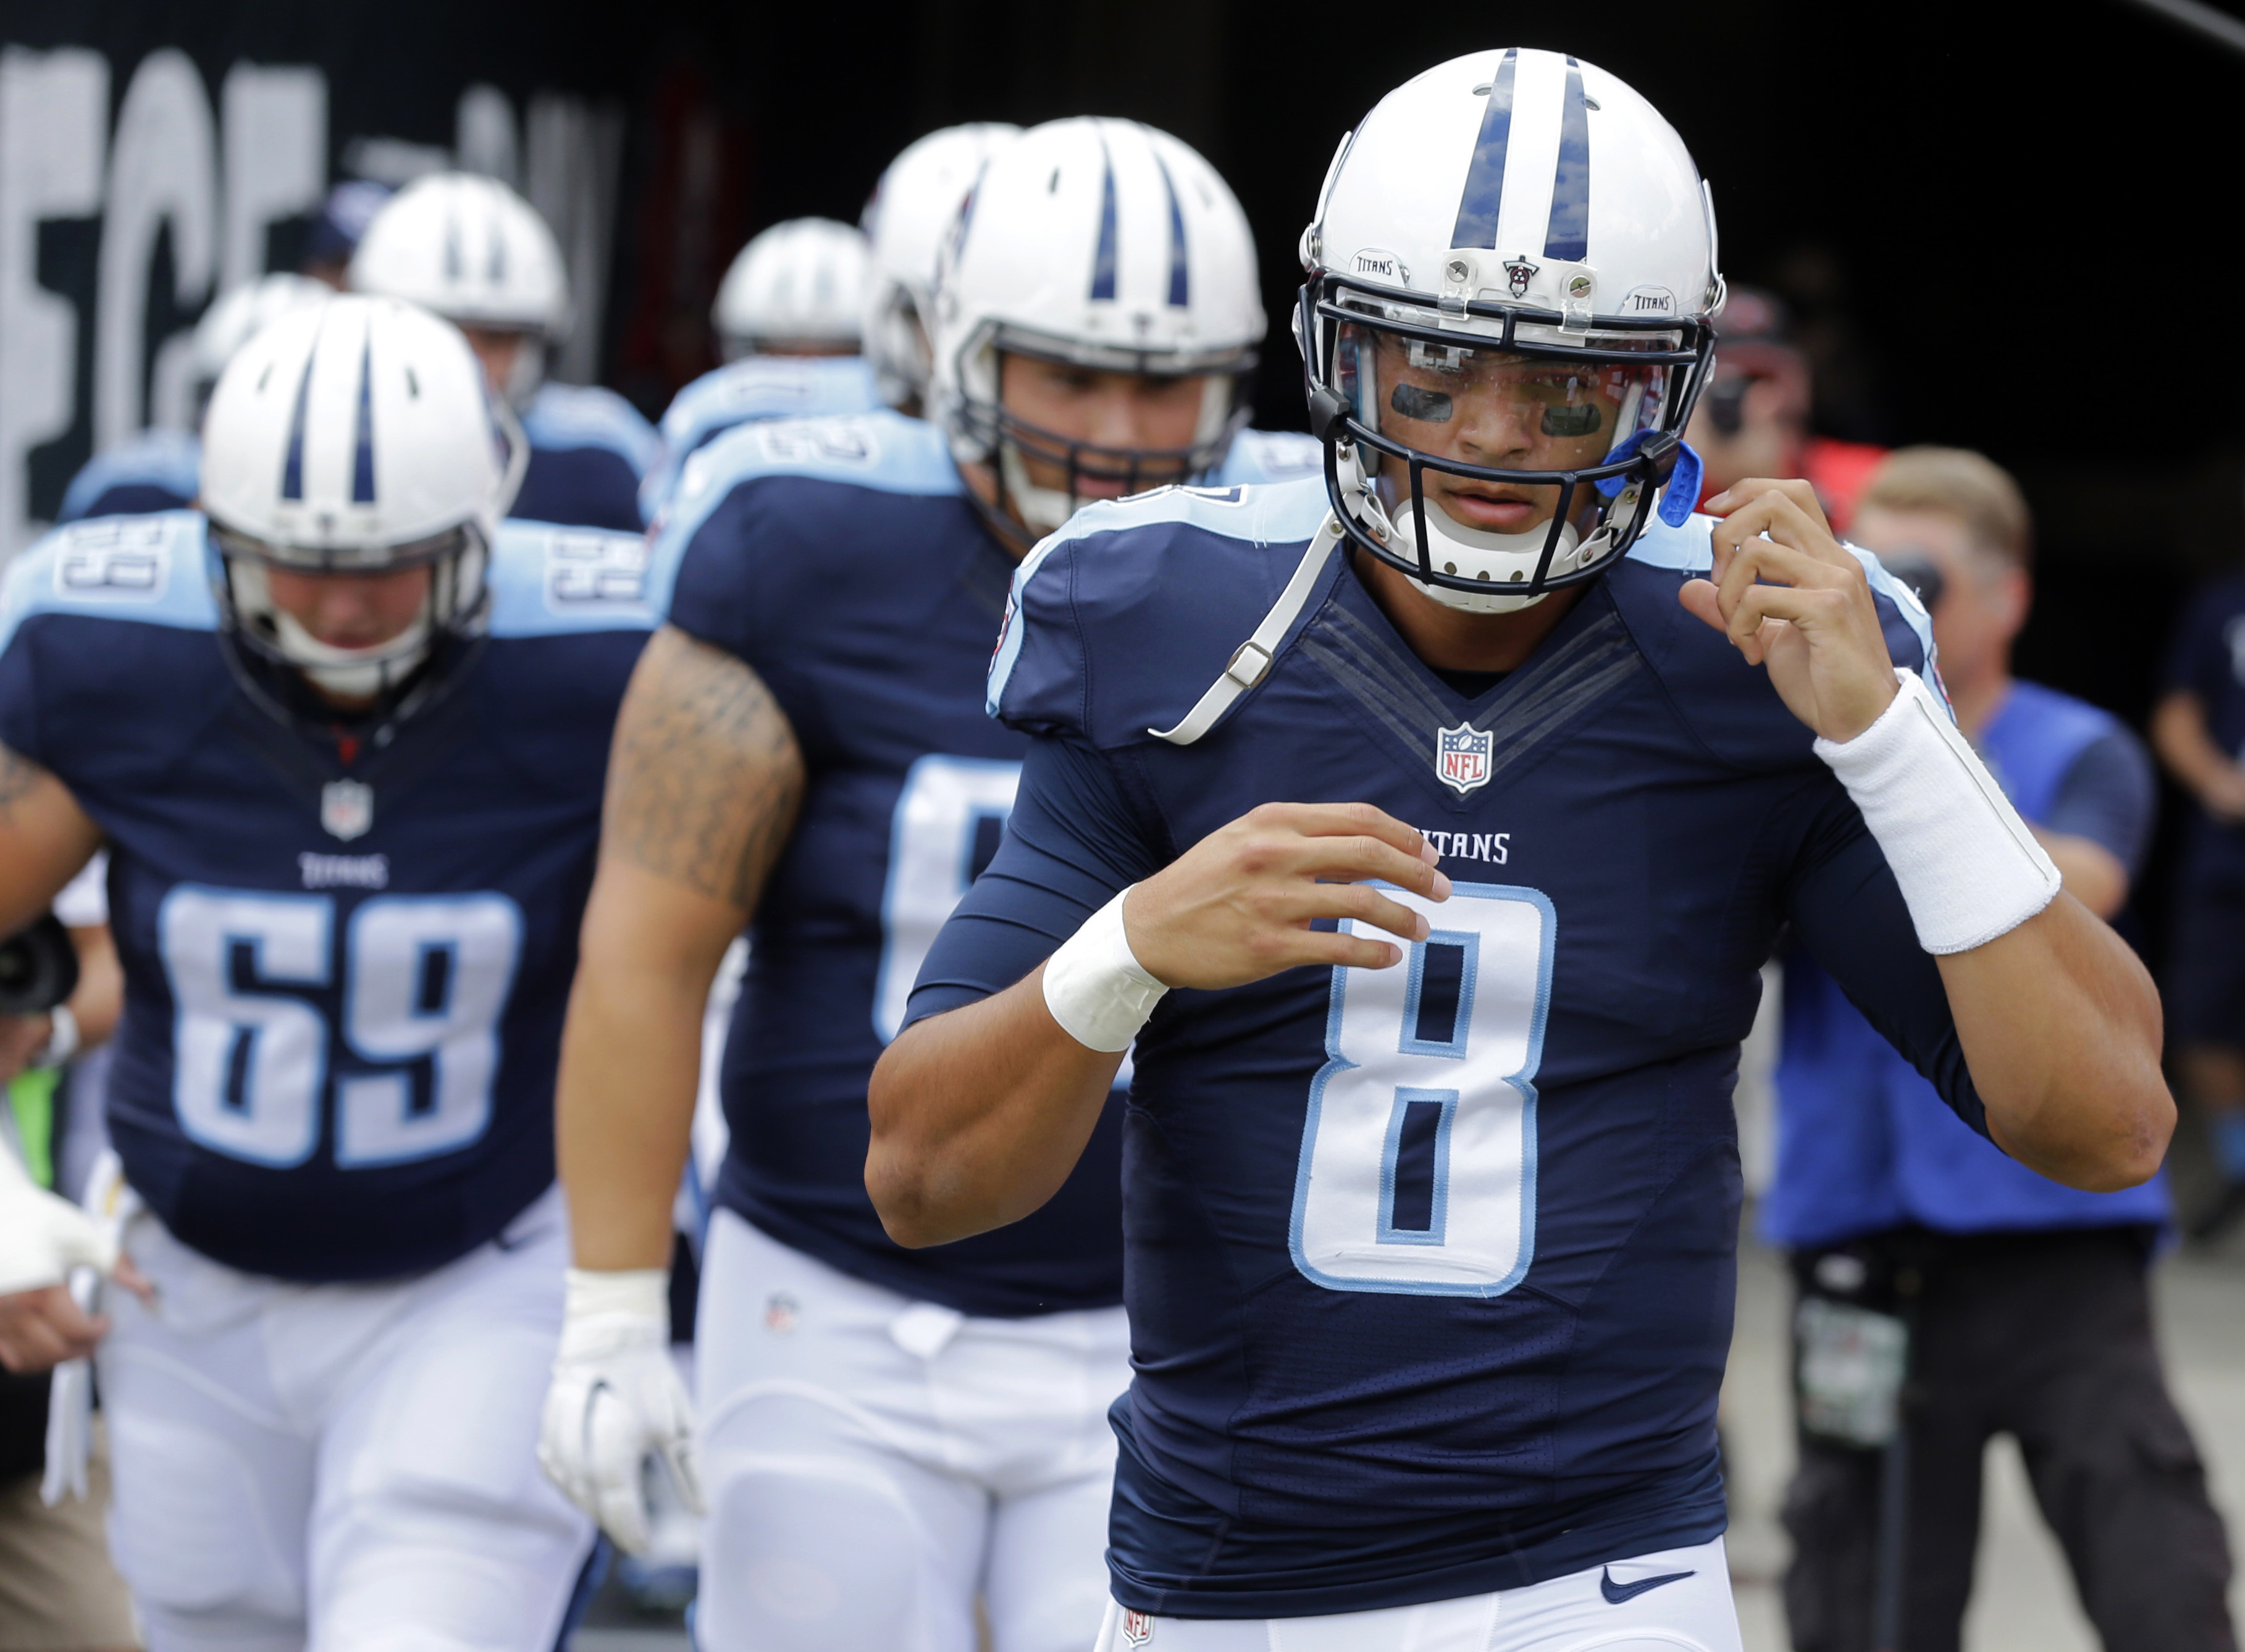 FILE - In this Sept. 13, 2015, file photo, Tennessee Titans quarterback Marcus Mariota (8) leads his teammates on to the field before an NFL football game against the Tampa Bay Buccaneers in Tampa, Fla. Mariota turned in a perfect passer rating in his NFL